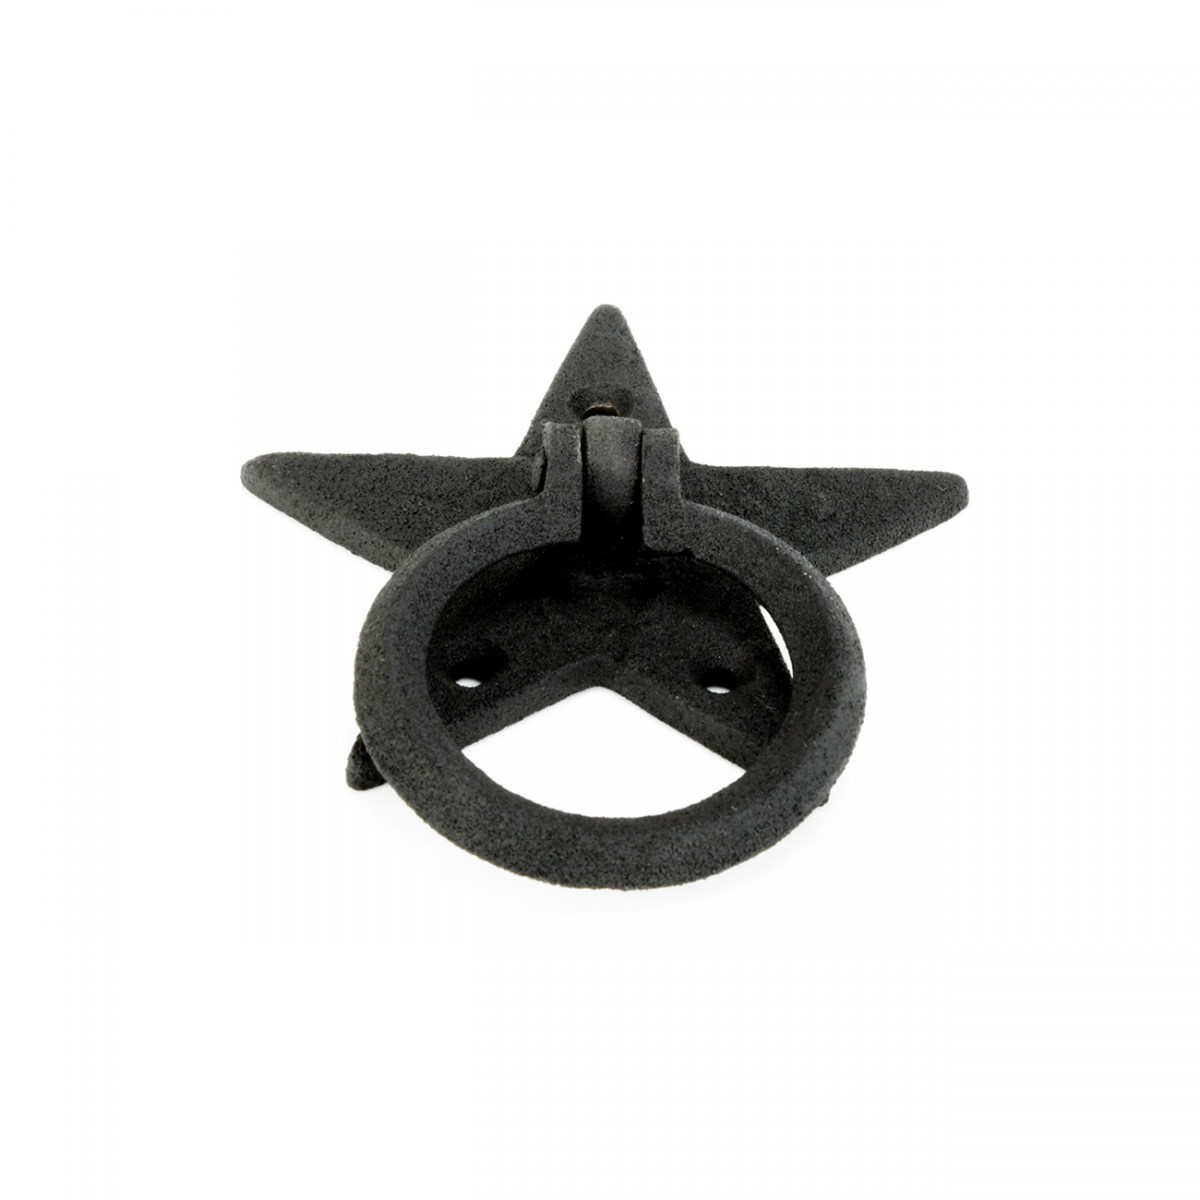 Cabinet Drawer Ring Pull Black Iron Southern Star Screws Included Pack of 4 Black Iron Star Cabinet Drawer Ring Pull